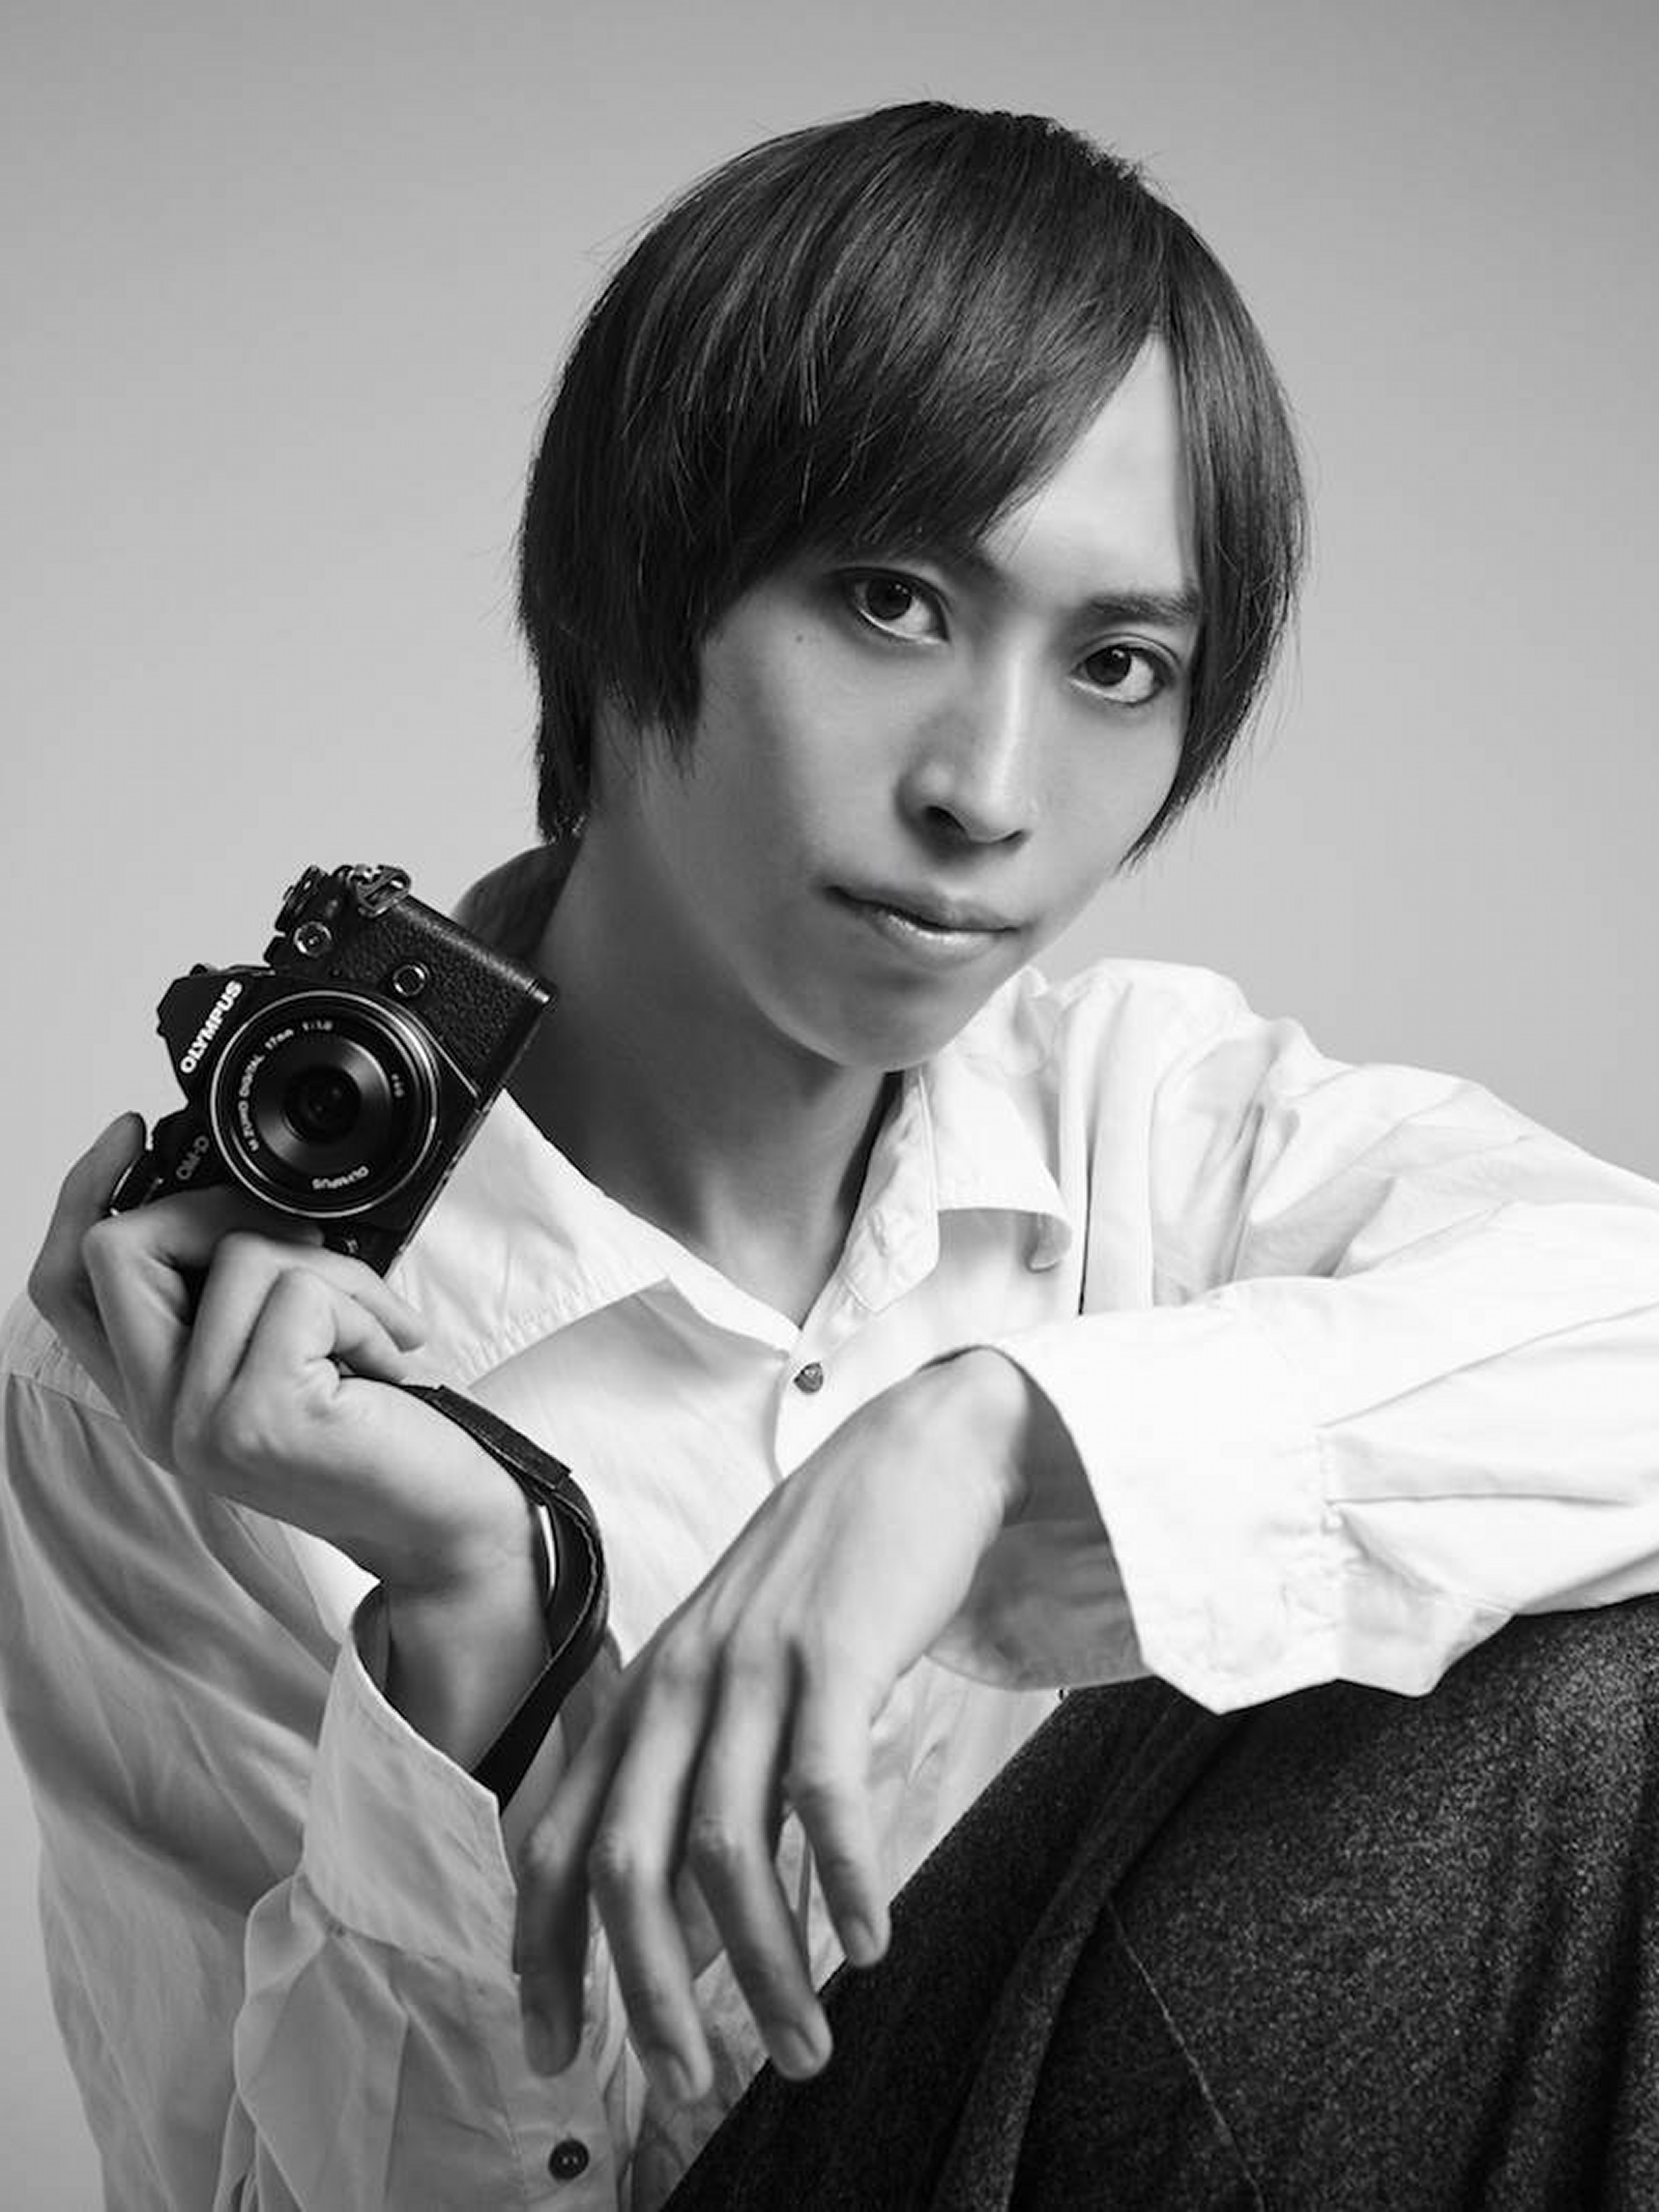 7/14(金)インテツ写真展「invitation from tha JOKER」